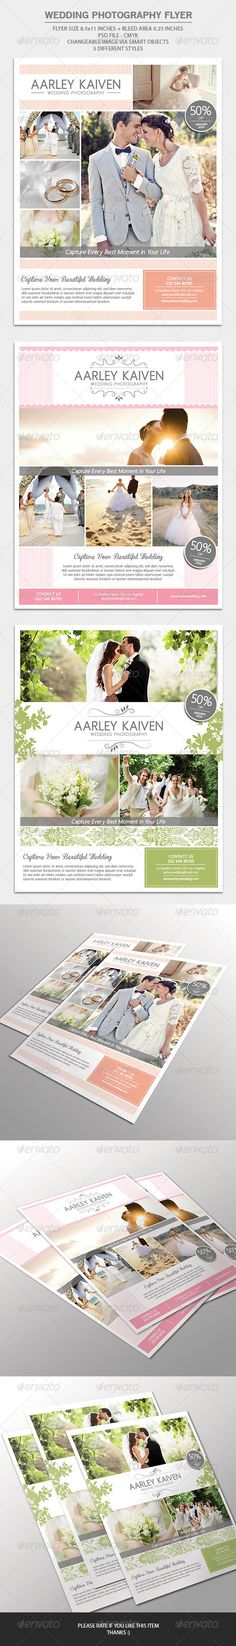 Wedding Planner Flyer Wedding planners, Planners and Flyer template - wedding flyer